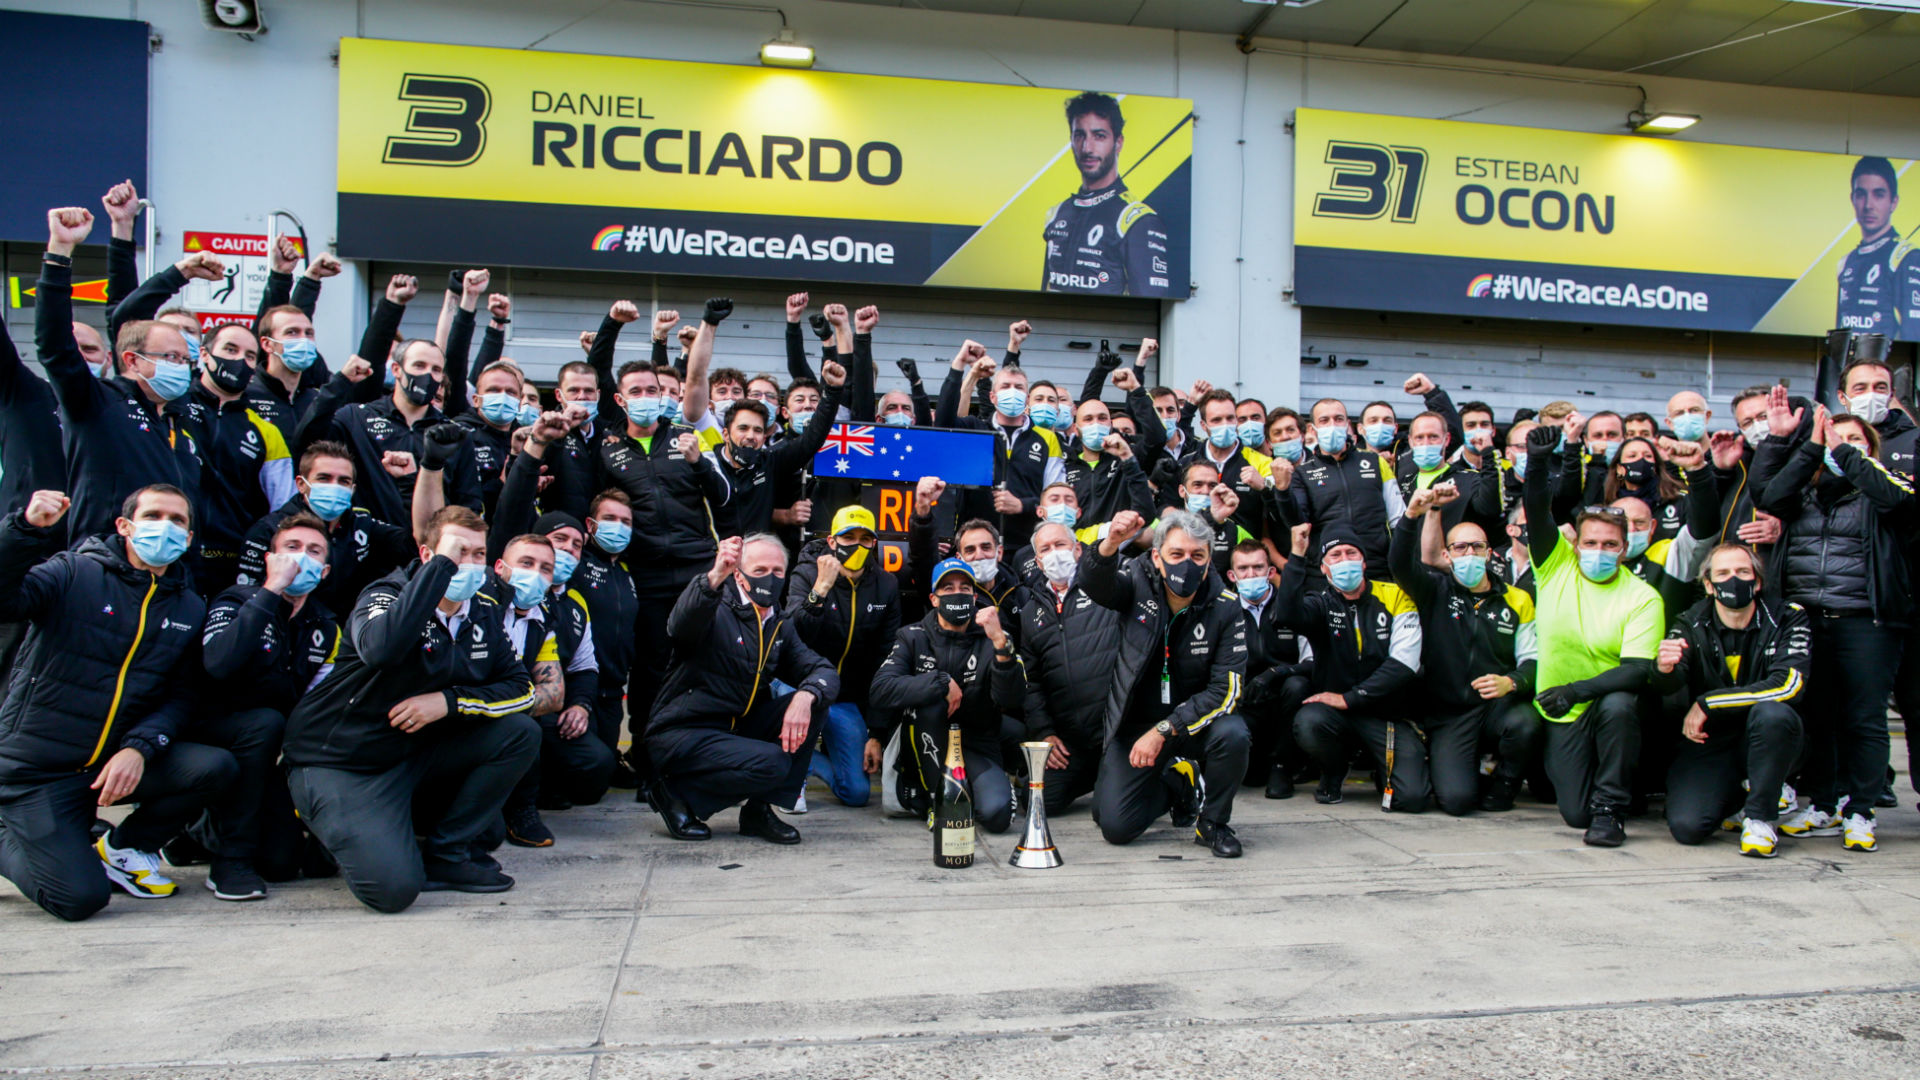 F1 2020: Renault chief set for German-themed Ricciardo tattoo after podium place